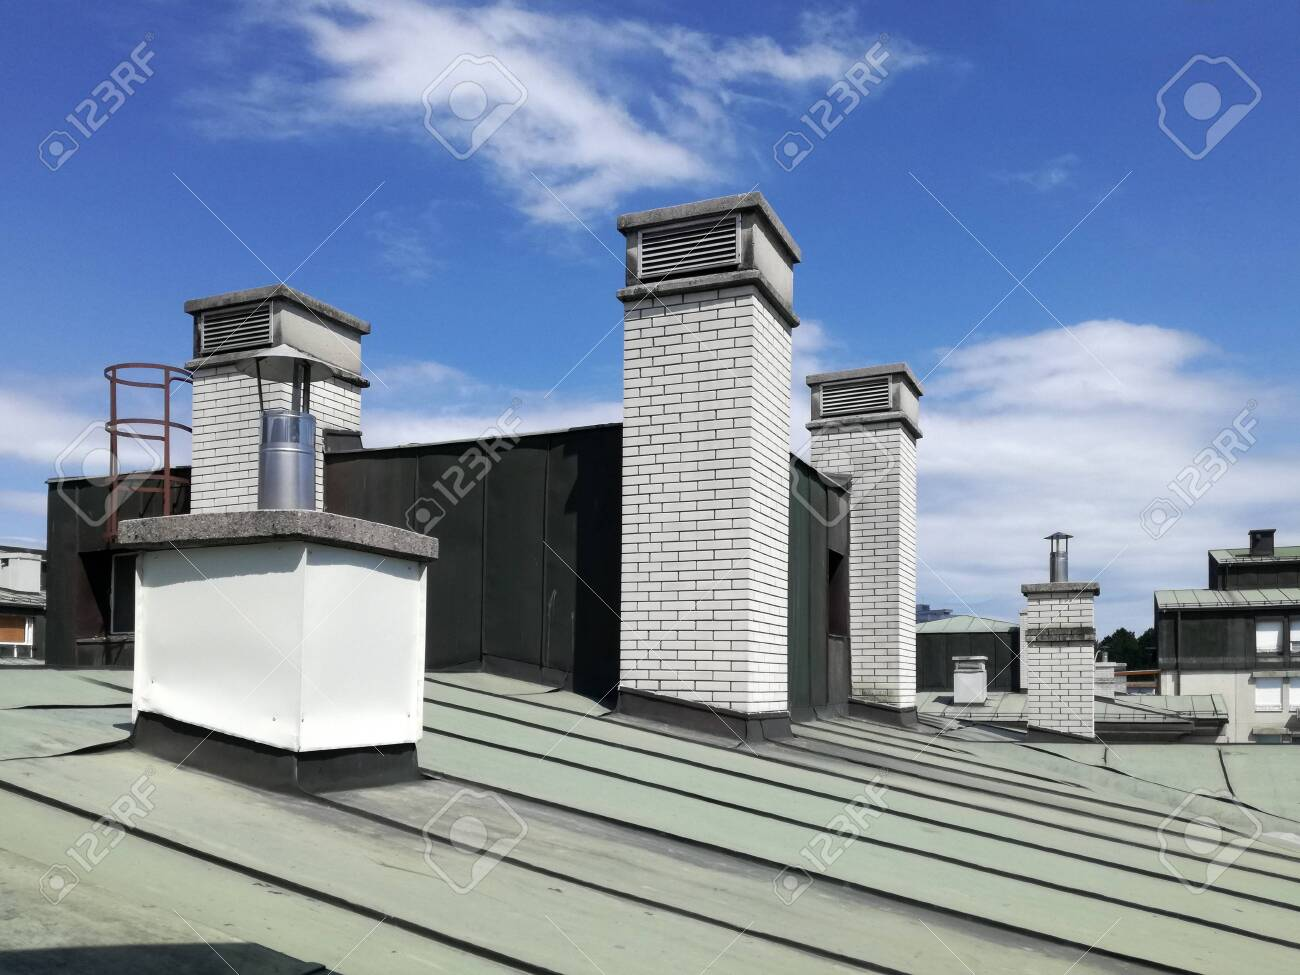 chimneys and vents on the tin roof of the building a chimney stock photo picture and royalty free image image 132191096